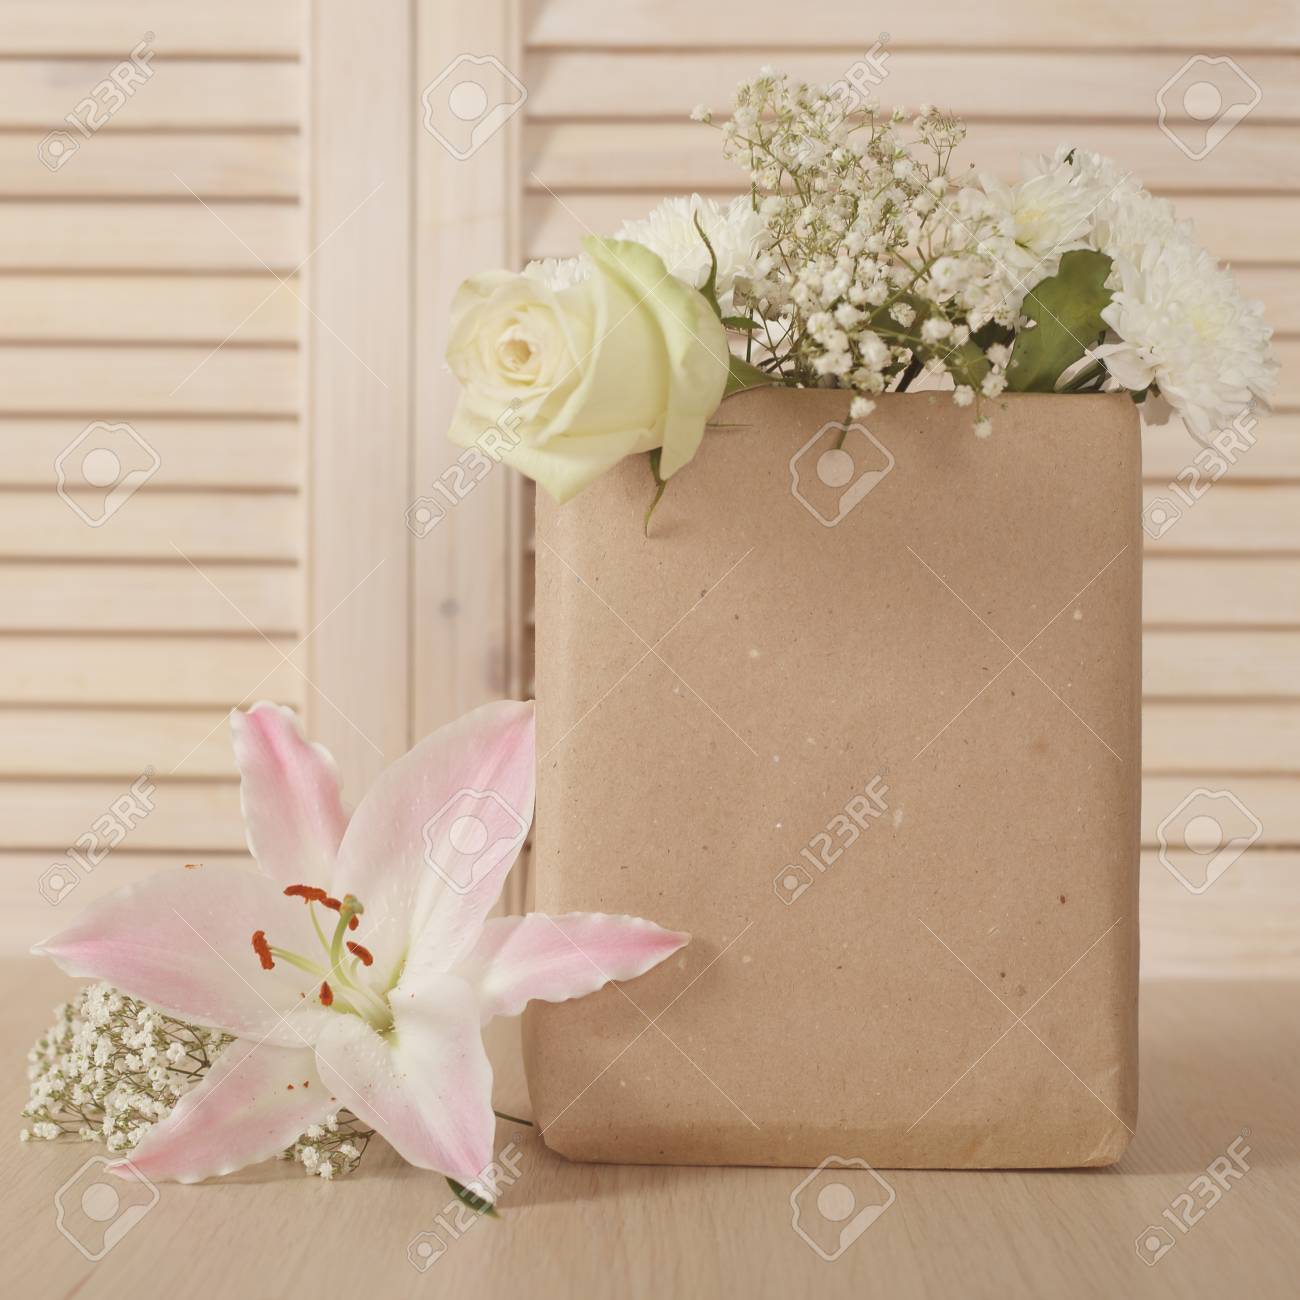 Valentine Day Bouquet Of Flowers In Paper Bag Stock Photo, Picture ...